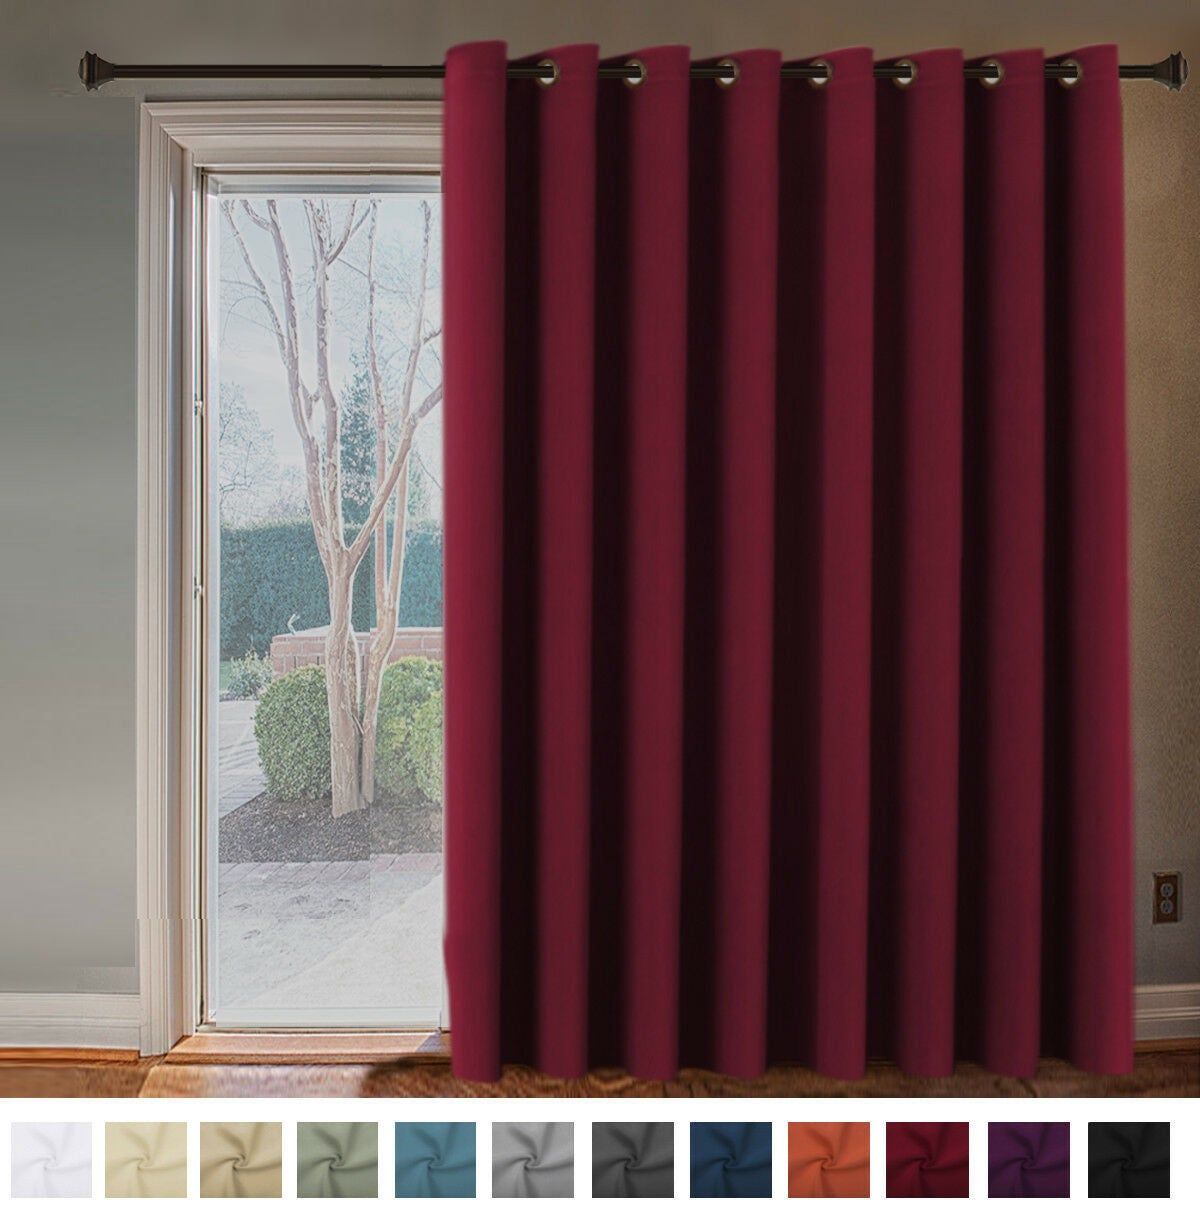 Double Wide Blockout Curtains Large Blackout Curtain Draperies Room Divider